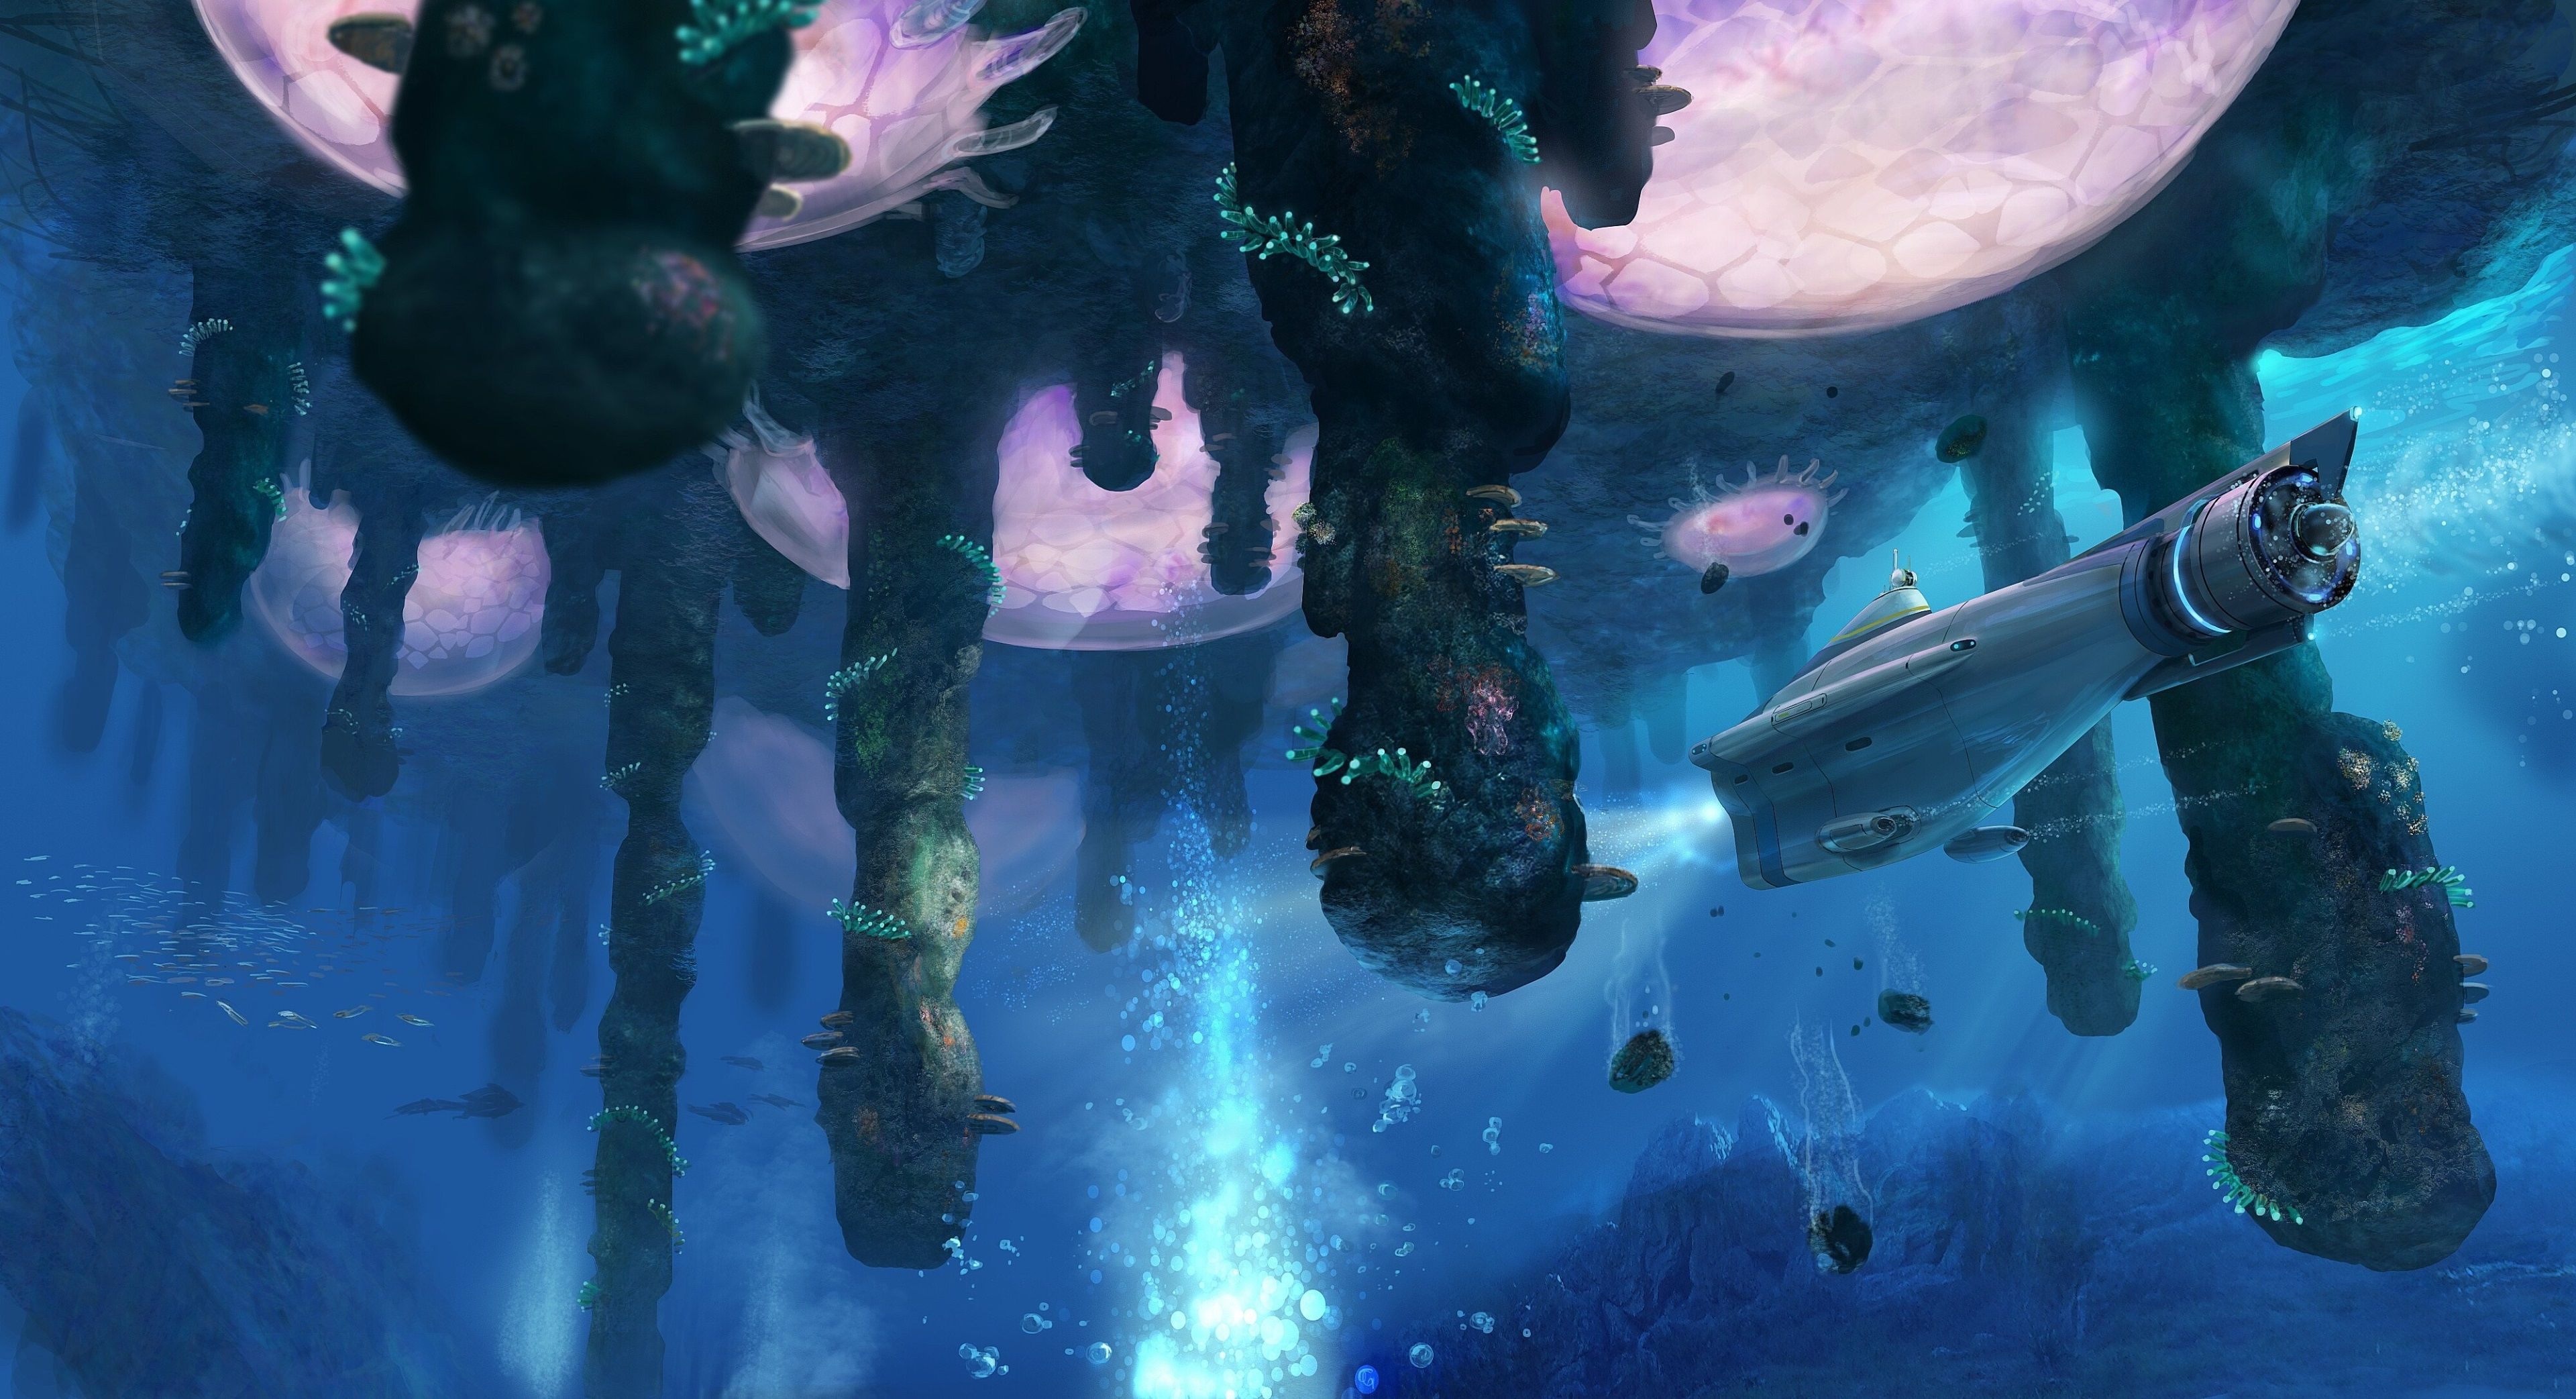 3840x2085 Subnautica 4k Hd Picture Under The Water In 2019